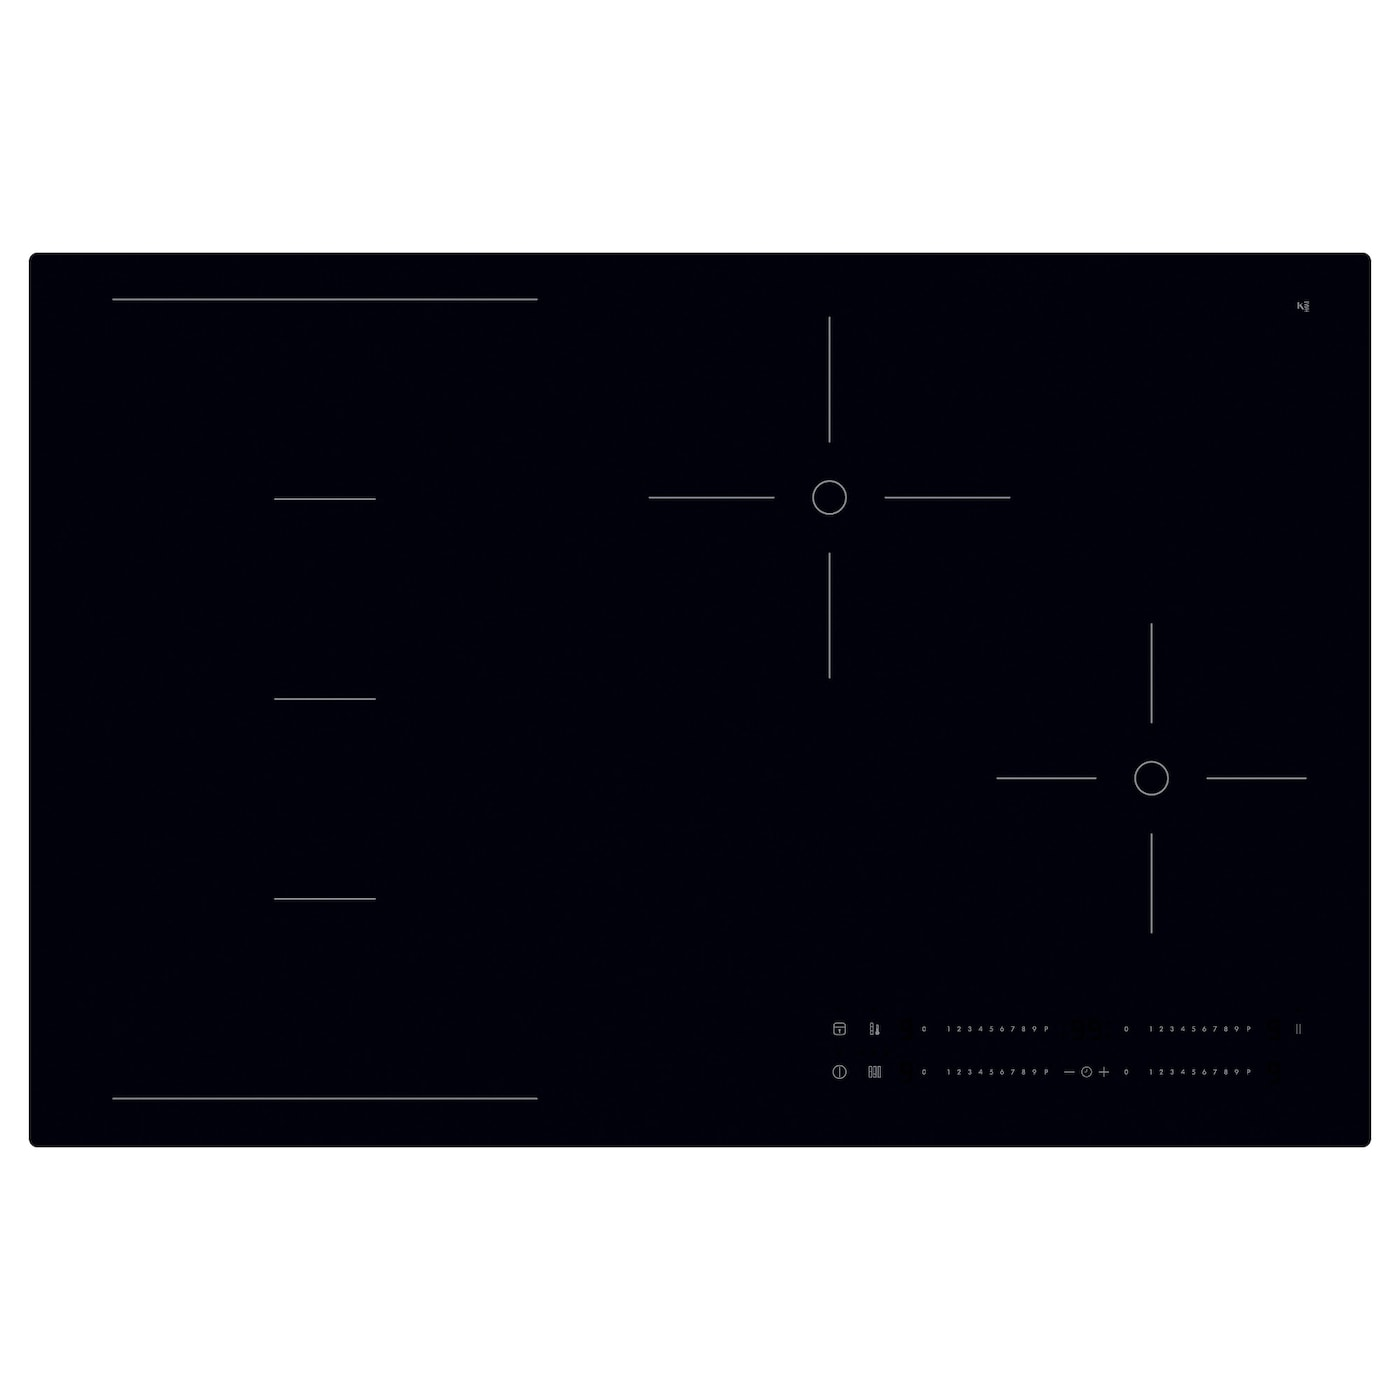 h gklassig induction hob with flexible zones black 78 cm ikea. Black Bedroom Furniture Sets. Home Design Ideas